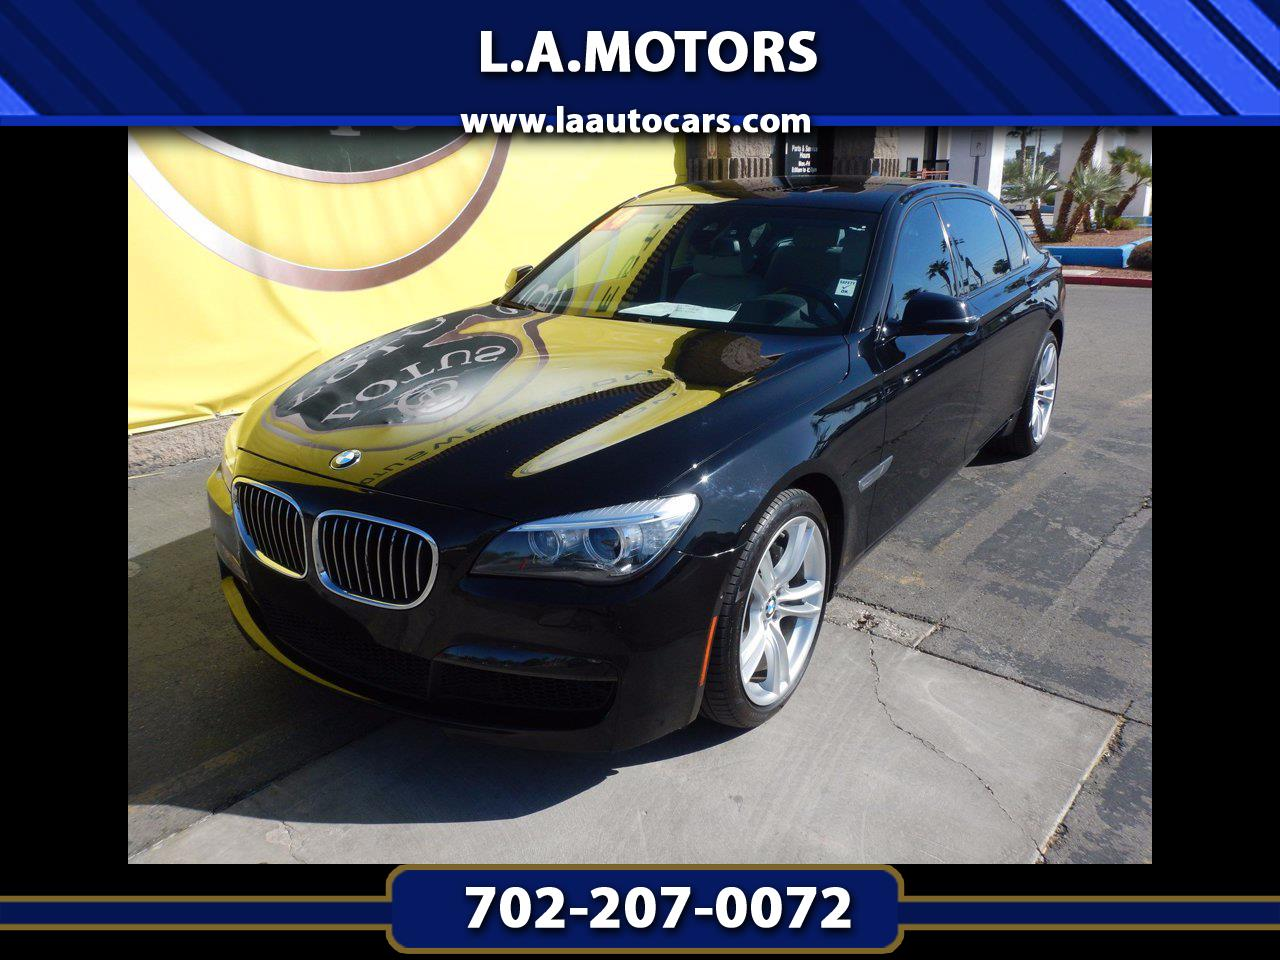 2014 BMW 7-Series 740iL